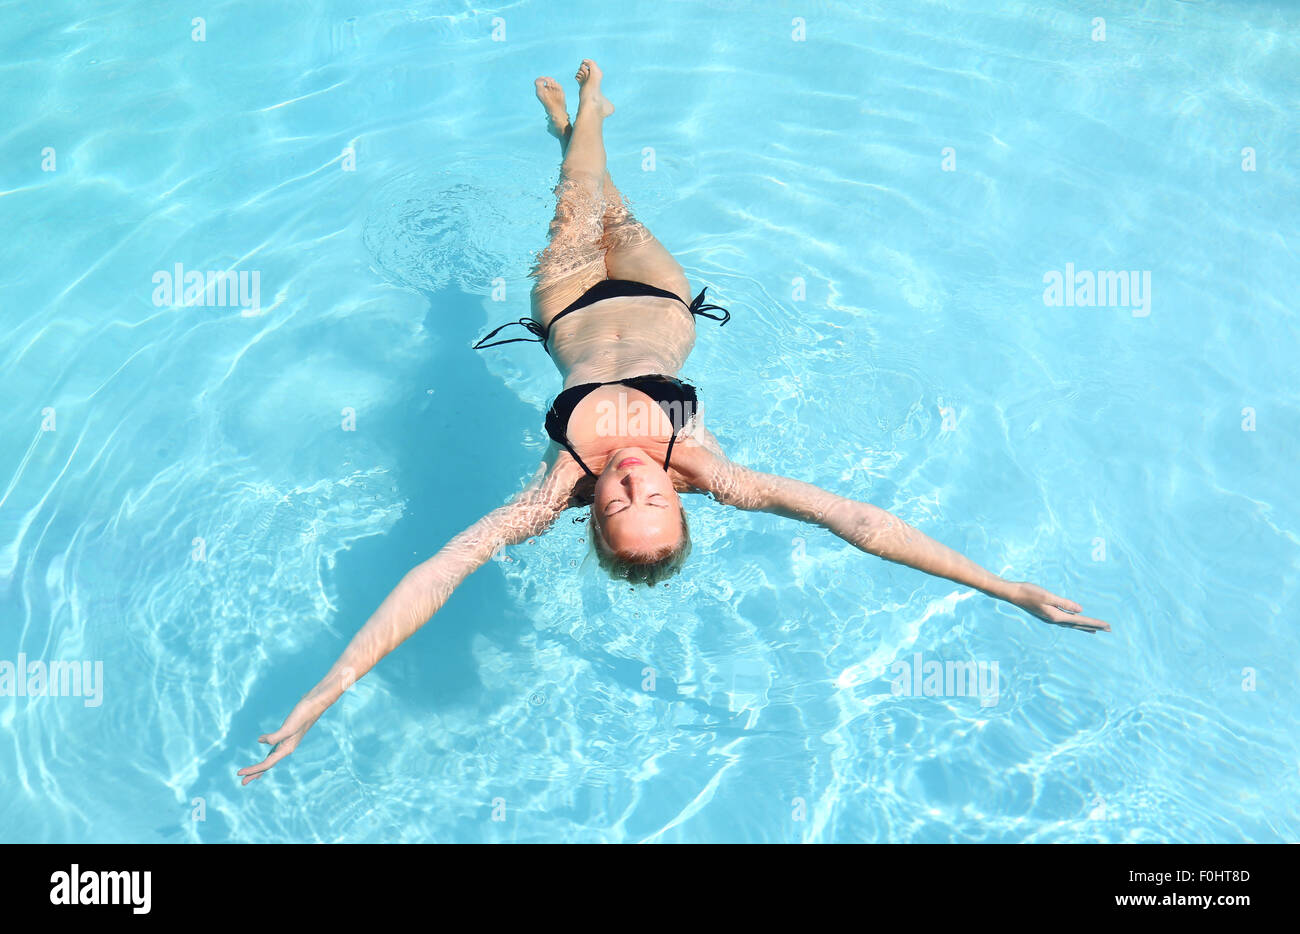 Dame de race blanche flottant dans la piscine. Photo Stock